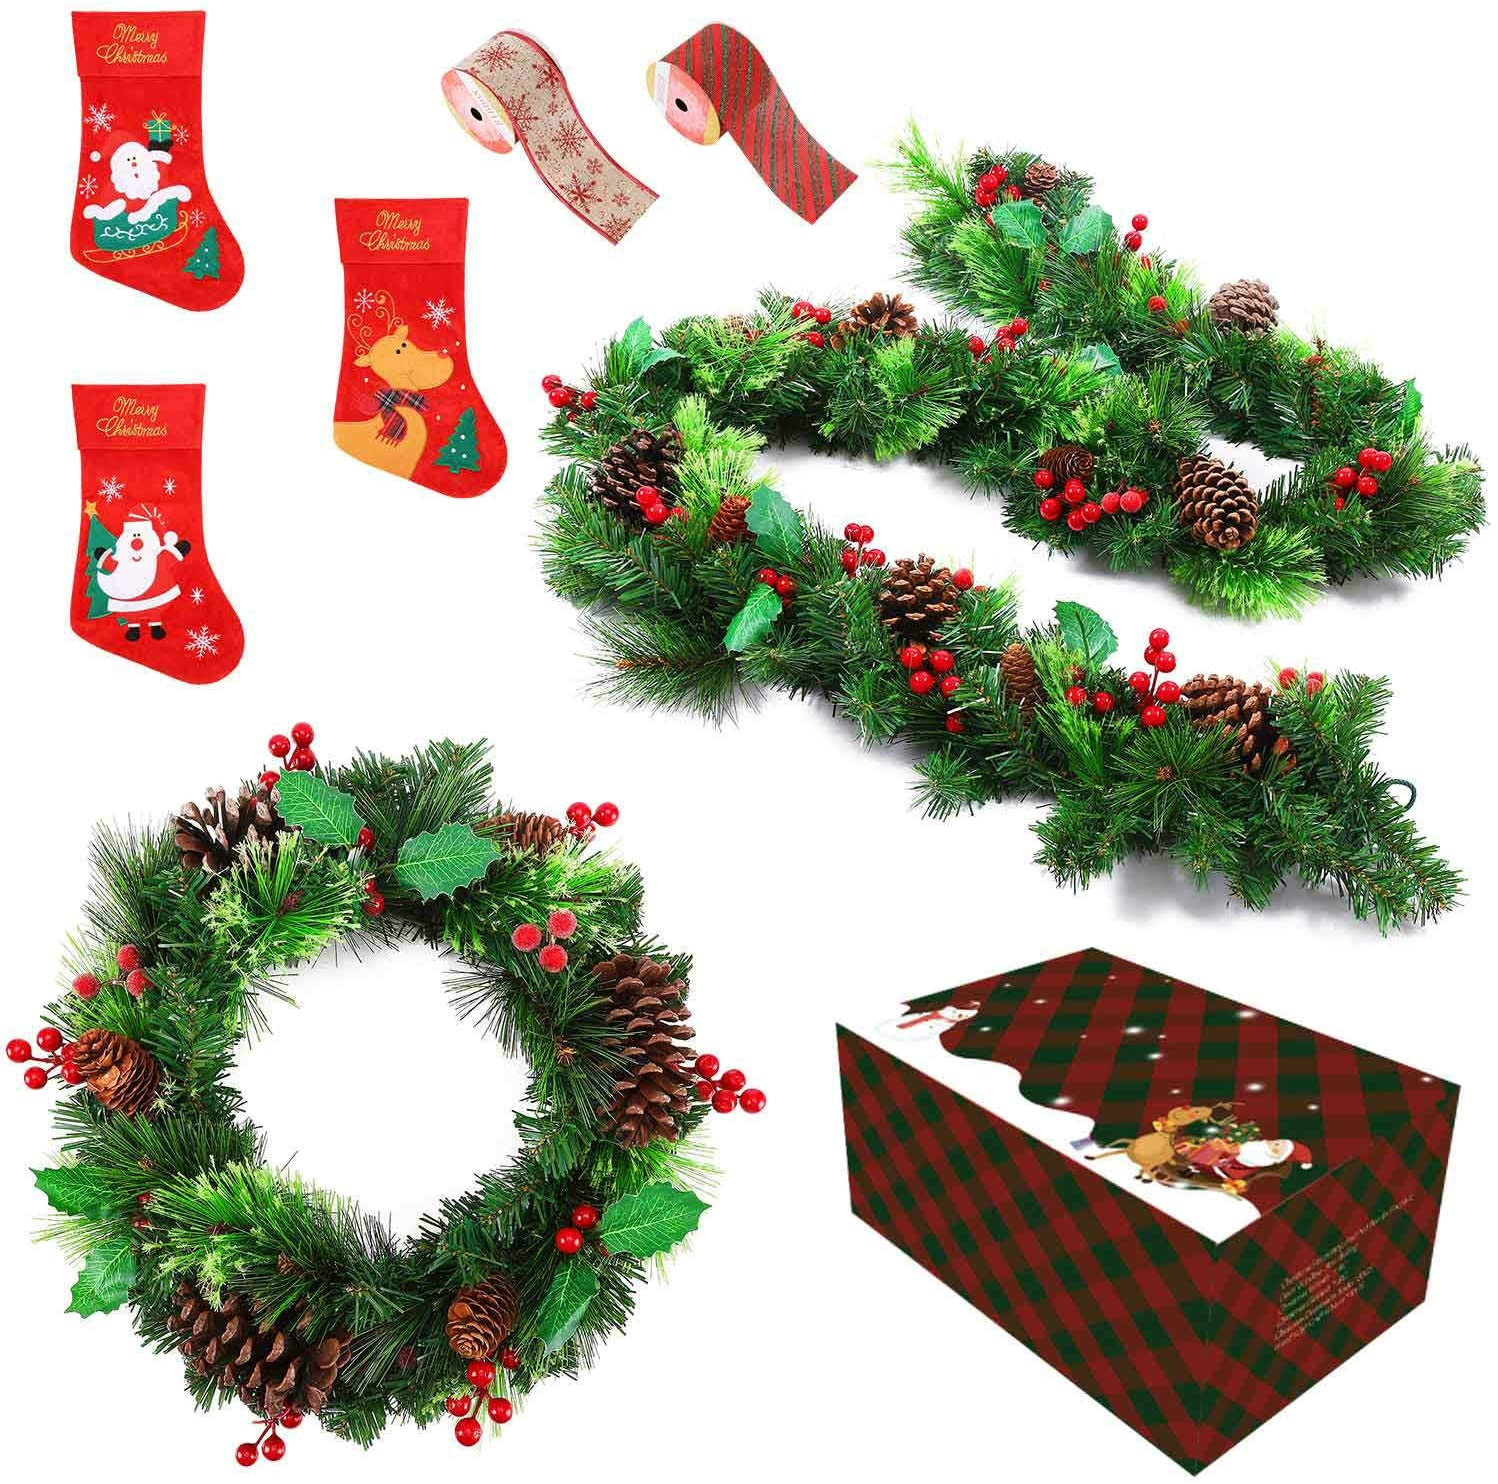 Christmas Fireplace Door Decor Set With 16 Xmas Wreath And 83 Pine Berries Garland Hanging Stockings Felt Ribons Whole Decoration Economical Pack Xmas Fireplace N Door Decor Walmart Com Walmart Com